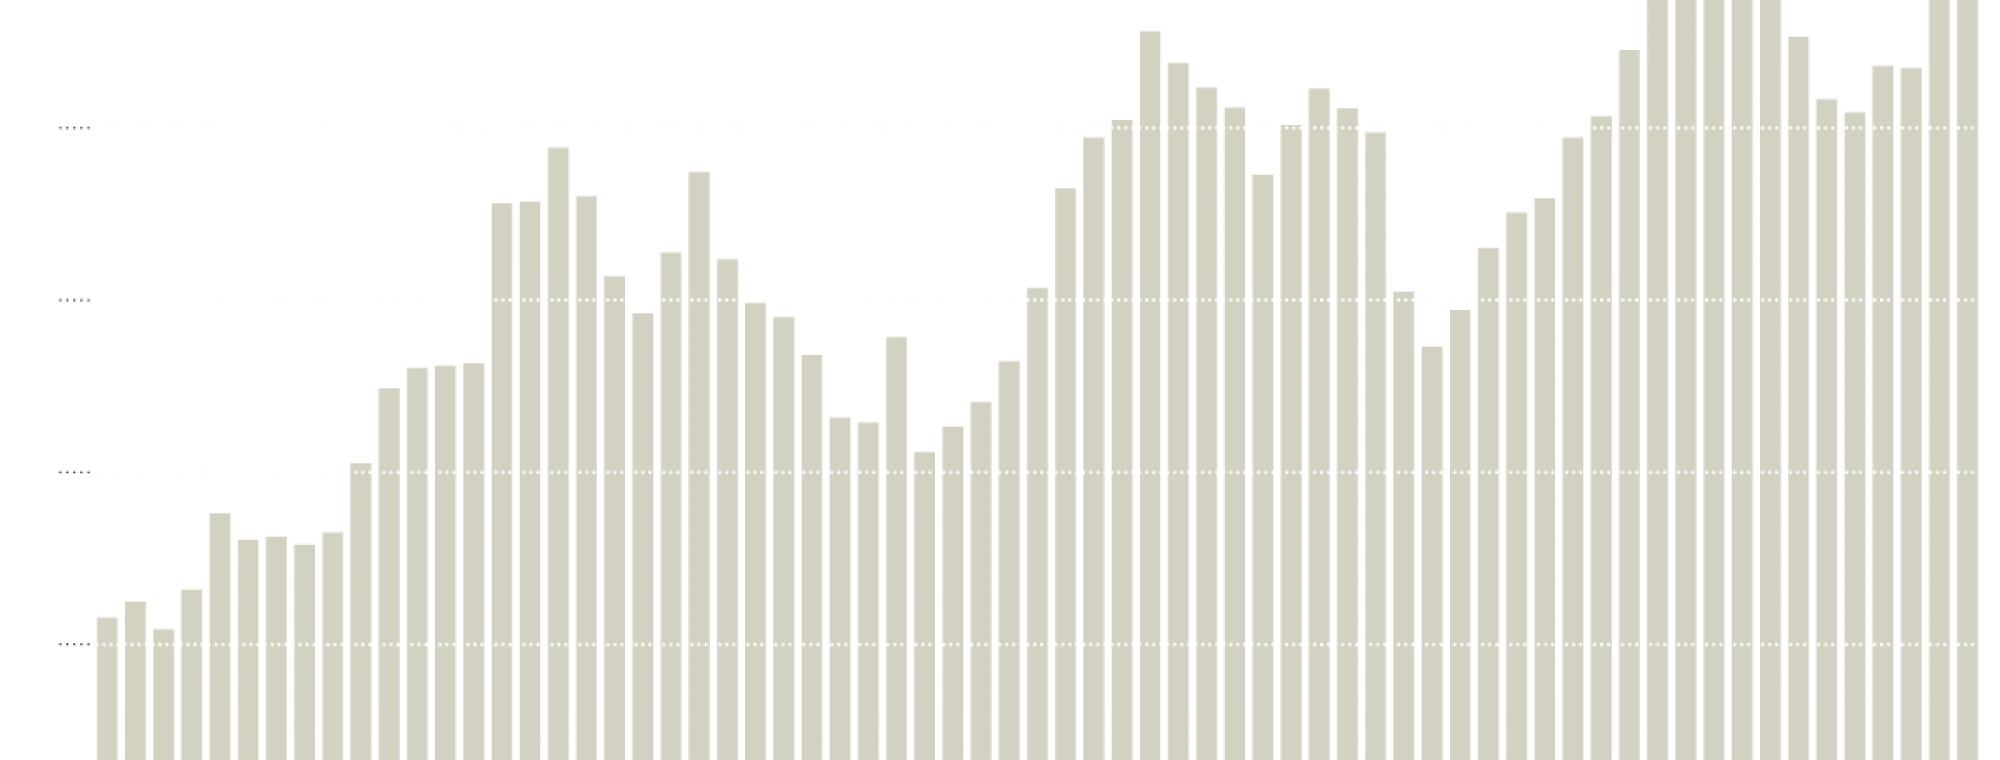 Annual spending by the Department of Energy and the Atomic Energy Commission on nuclear weapons research, development, testing and production.